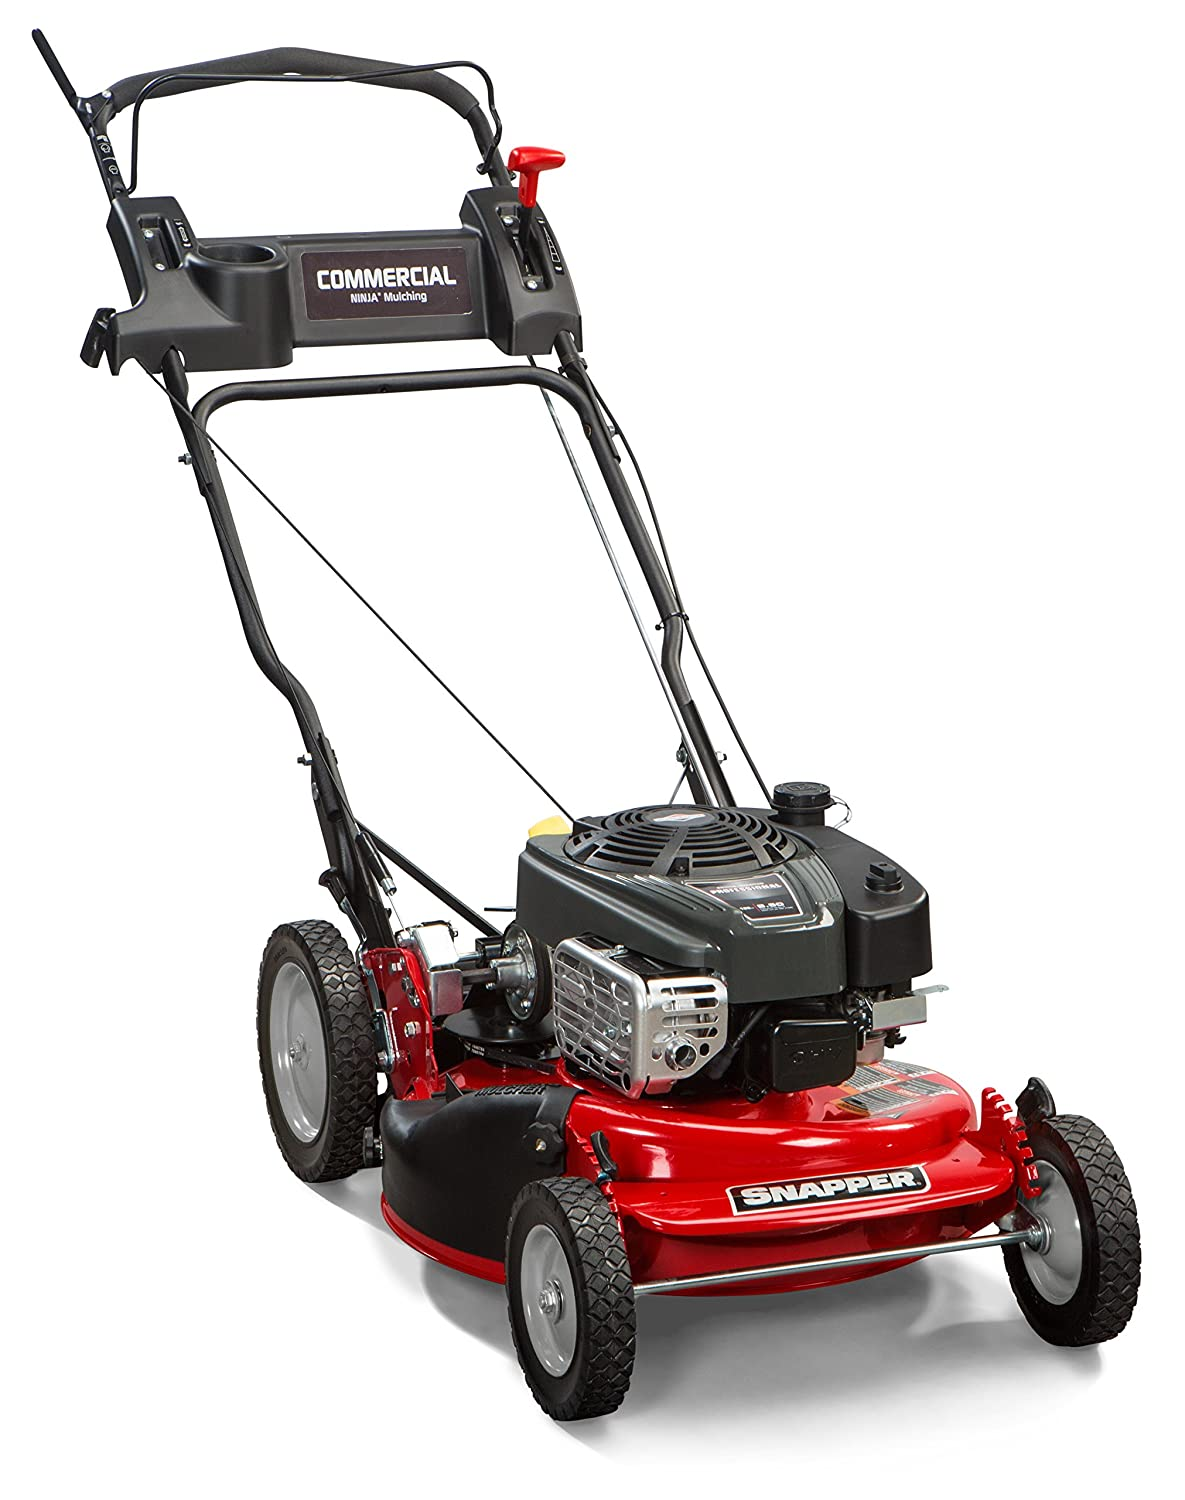 Snapper CRP218520 / 7800968 Commercial Series Lawn Mower  Snapper Lawn Mower Reviews